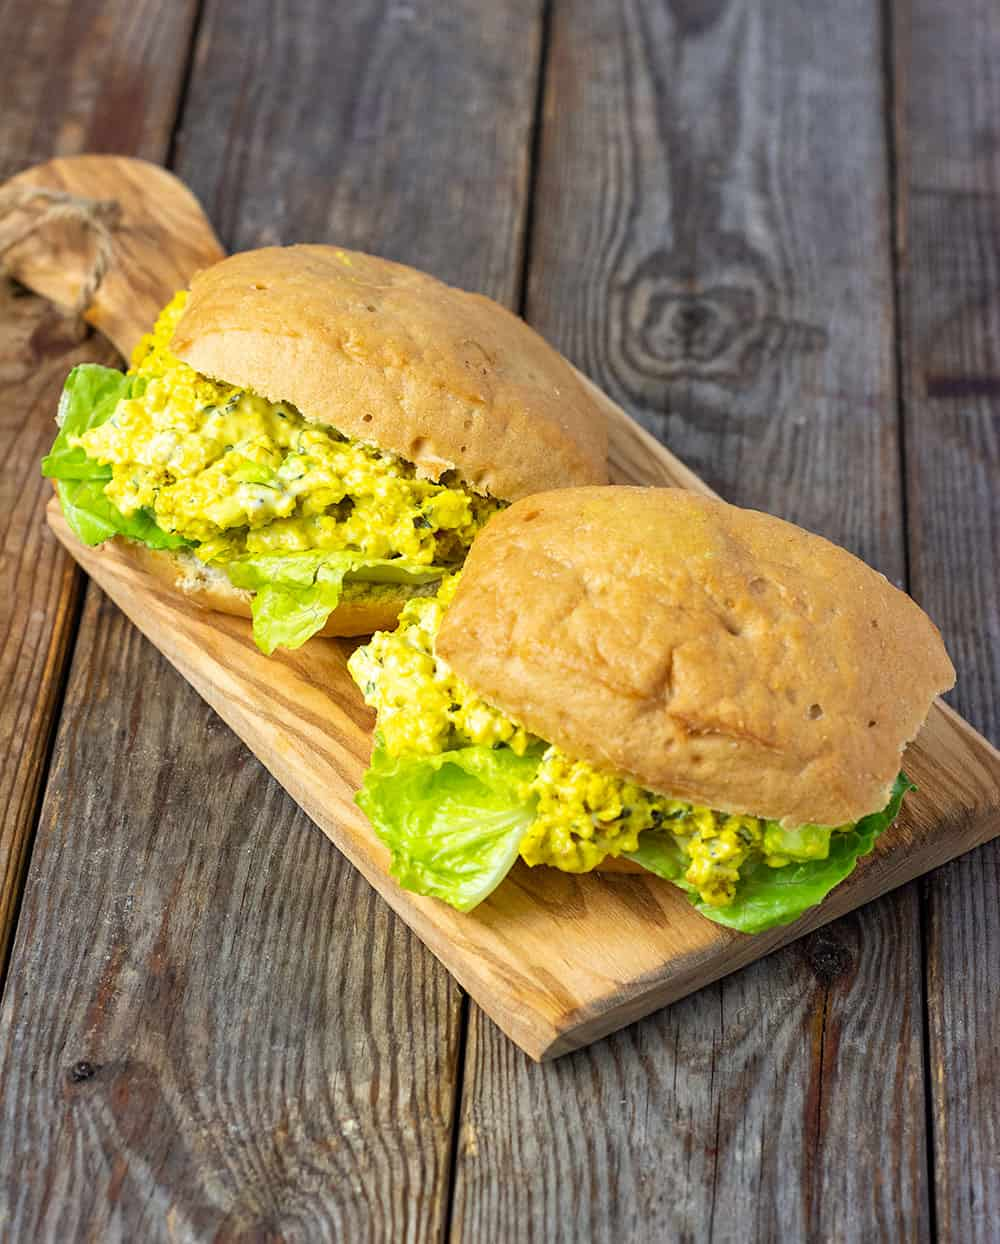 two egg salad sandwiches on a wooden board